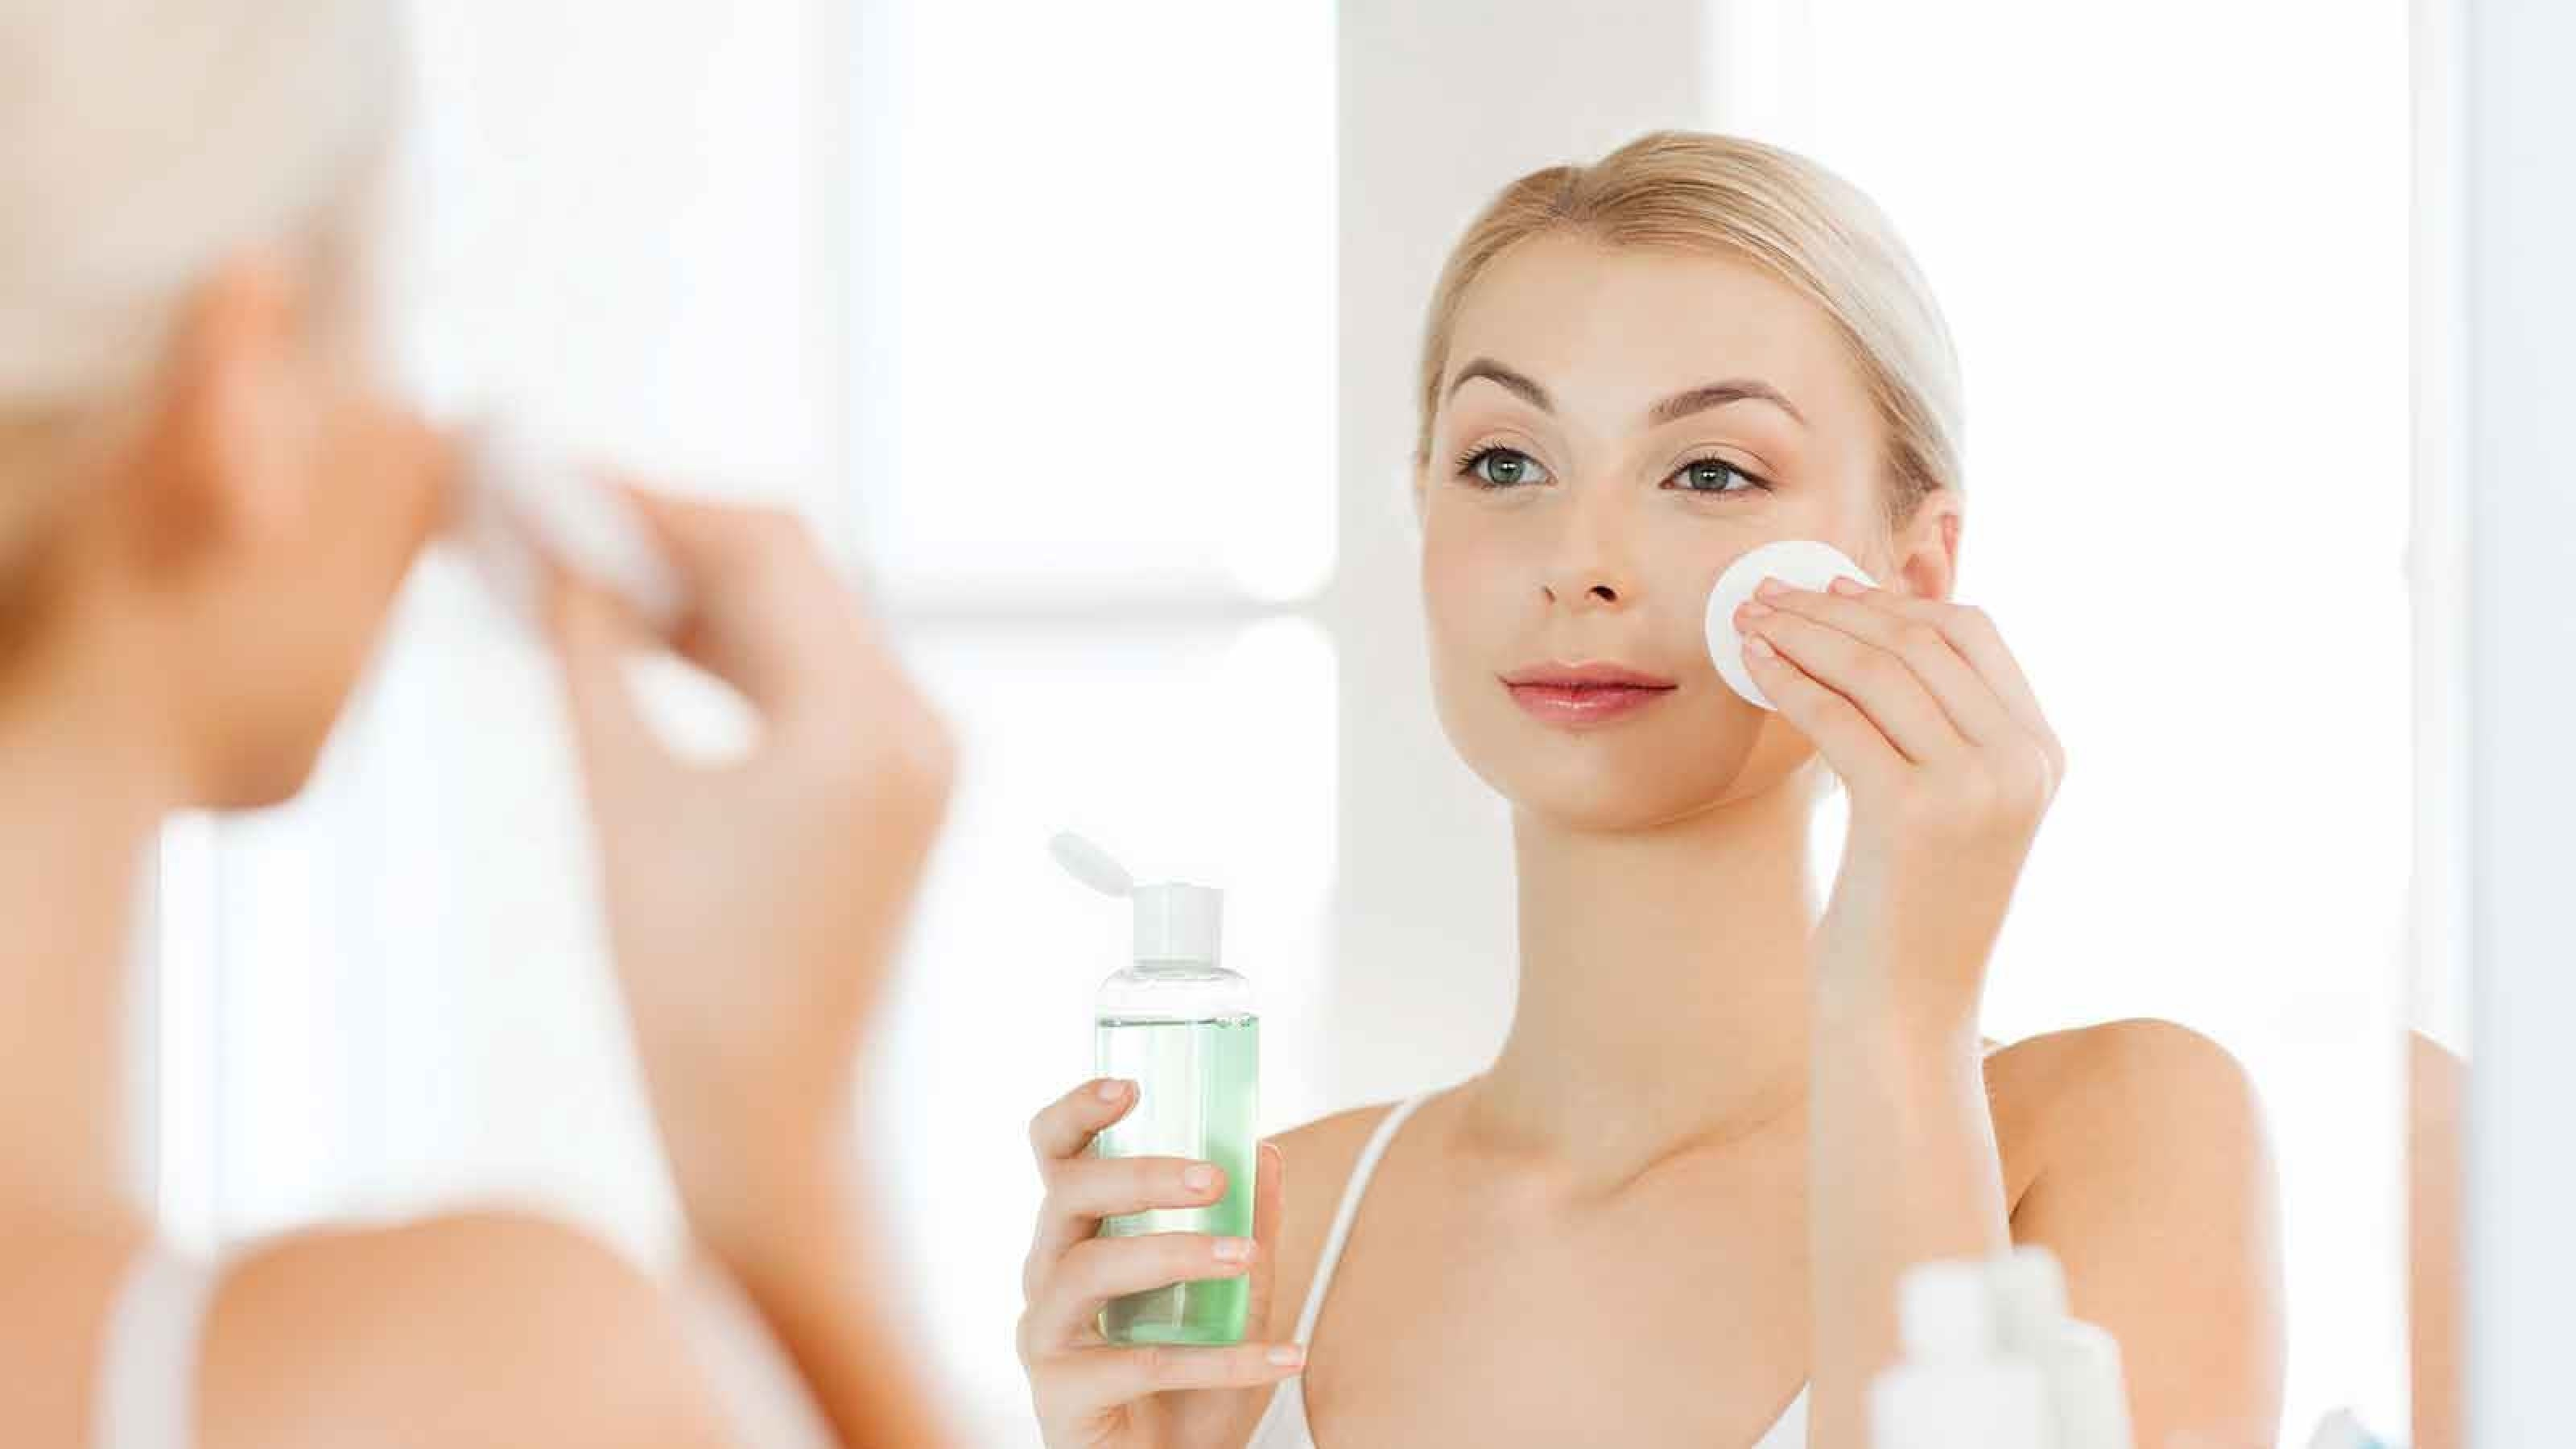 Your Guide To Choosing The Right Facial Exfoliators Lifesavvy